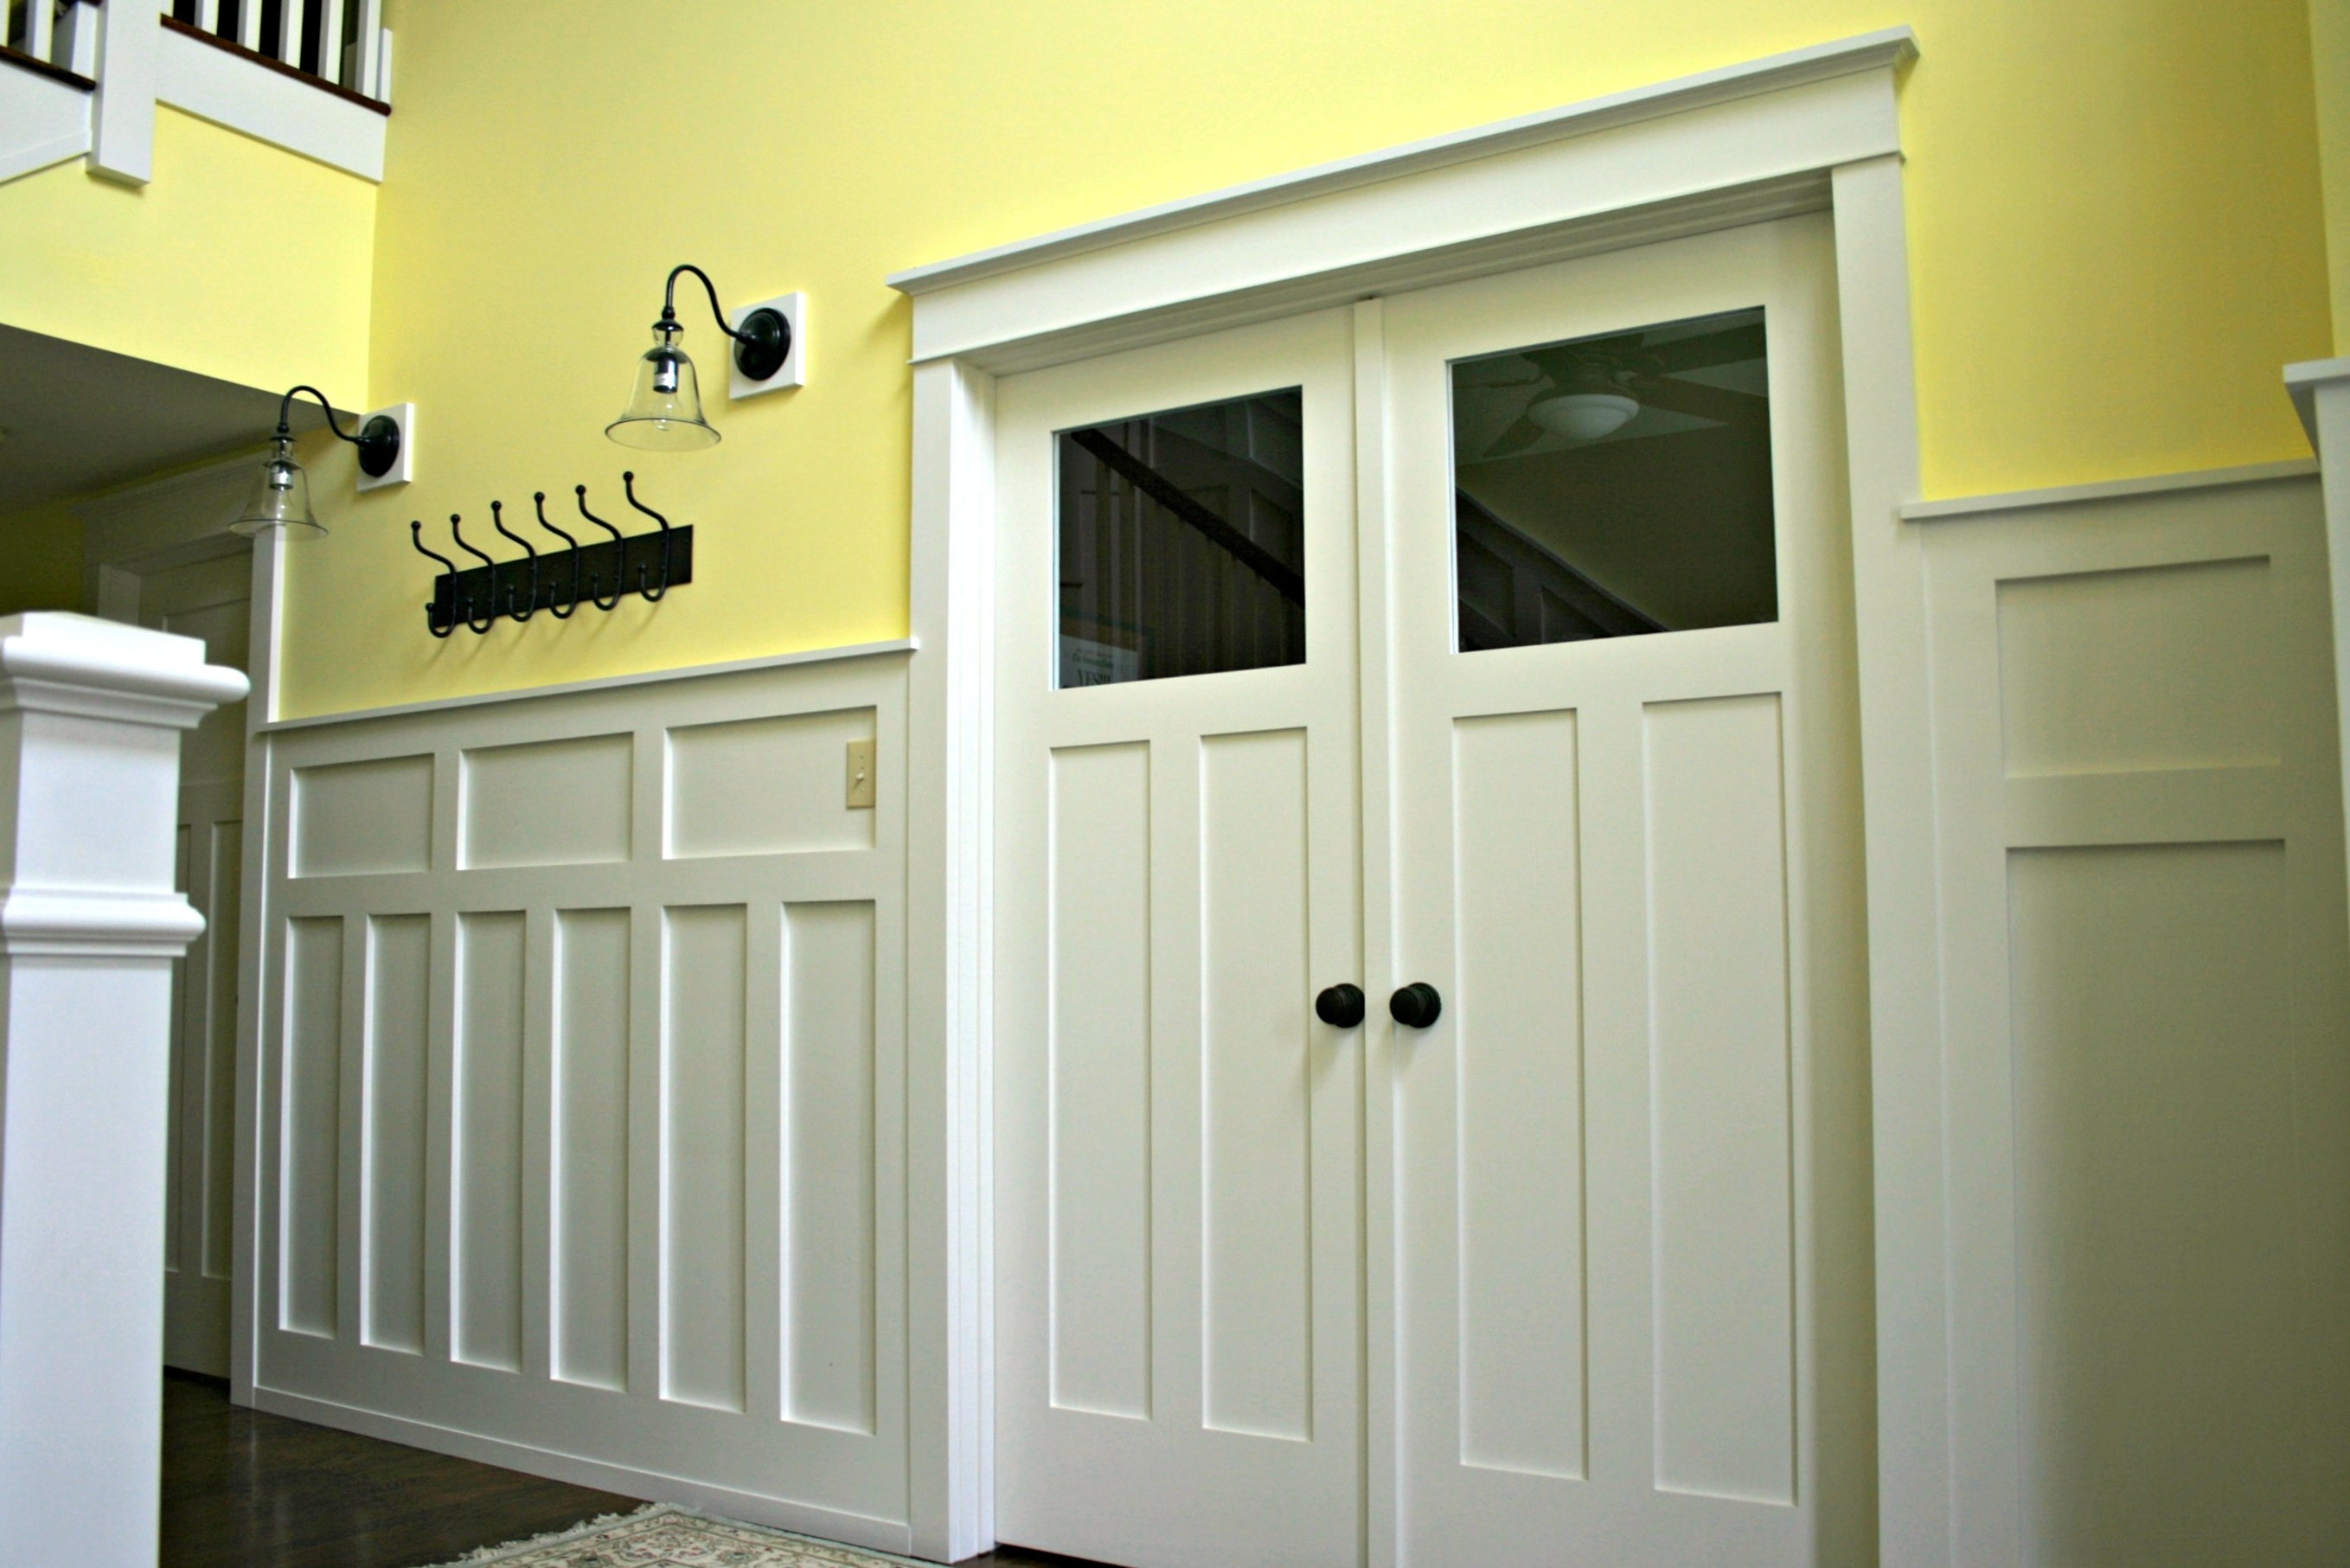 Wainscoting Around Windows Without Casing on wainscoting wall with window, wainscoting at windows, wainscoting panels under windows, wainscoting ideas, wainscoting dining room with window,